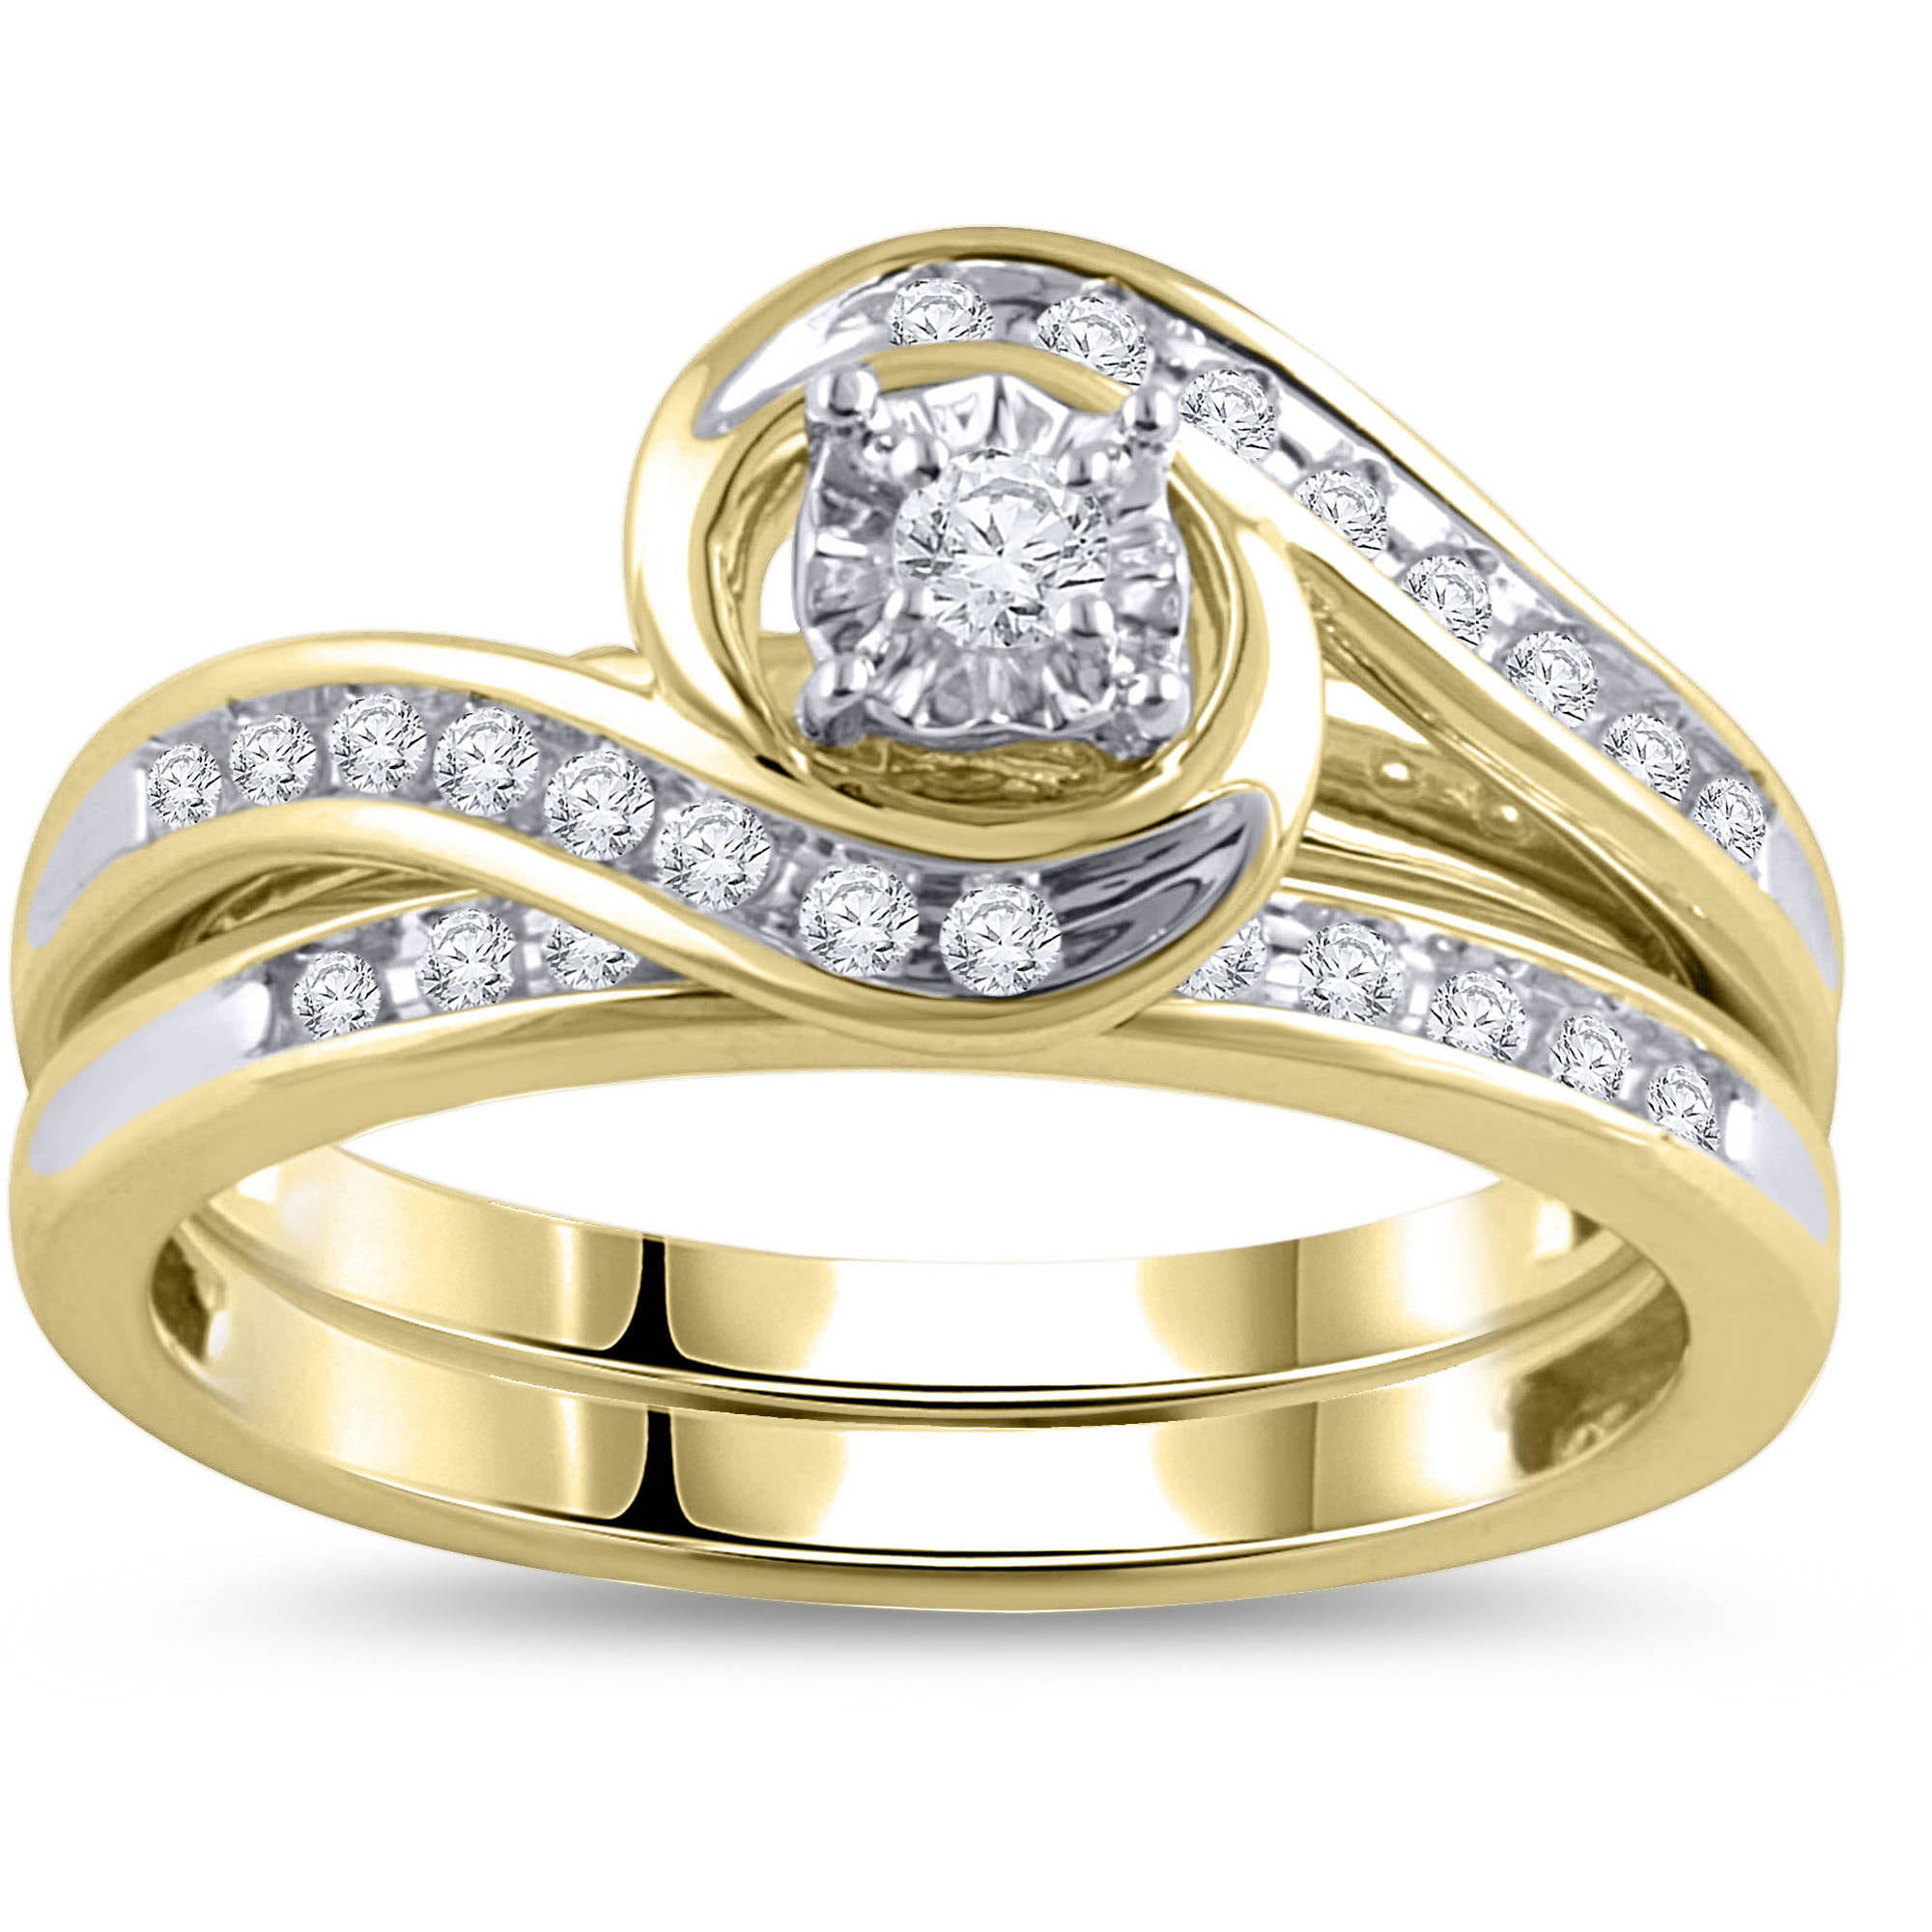 13 Carat Diamond Yellow Gold Bypass Bridal Ring Set Walmartcom